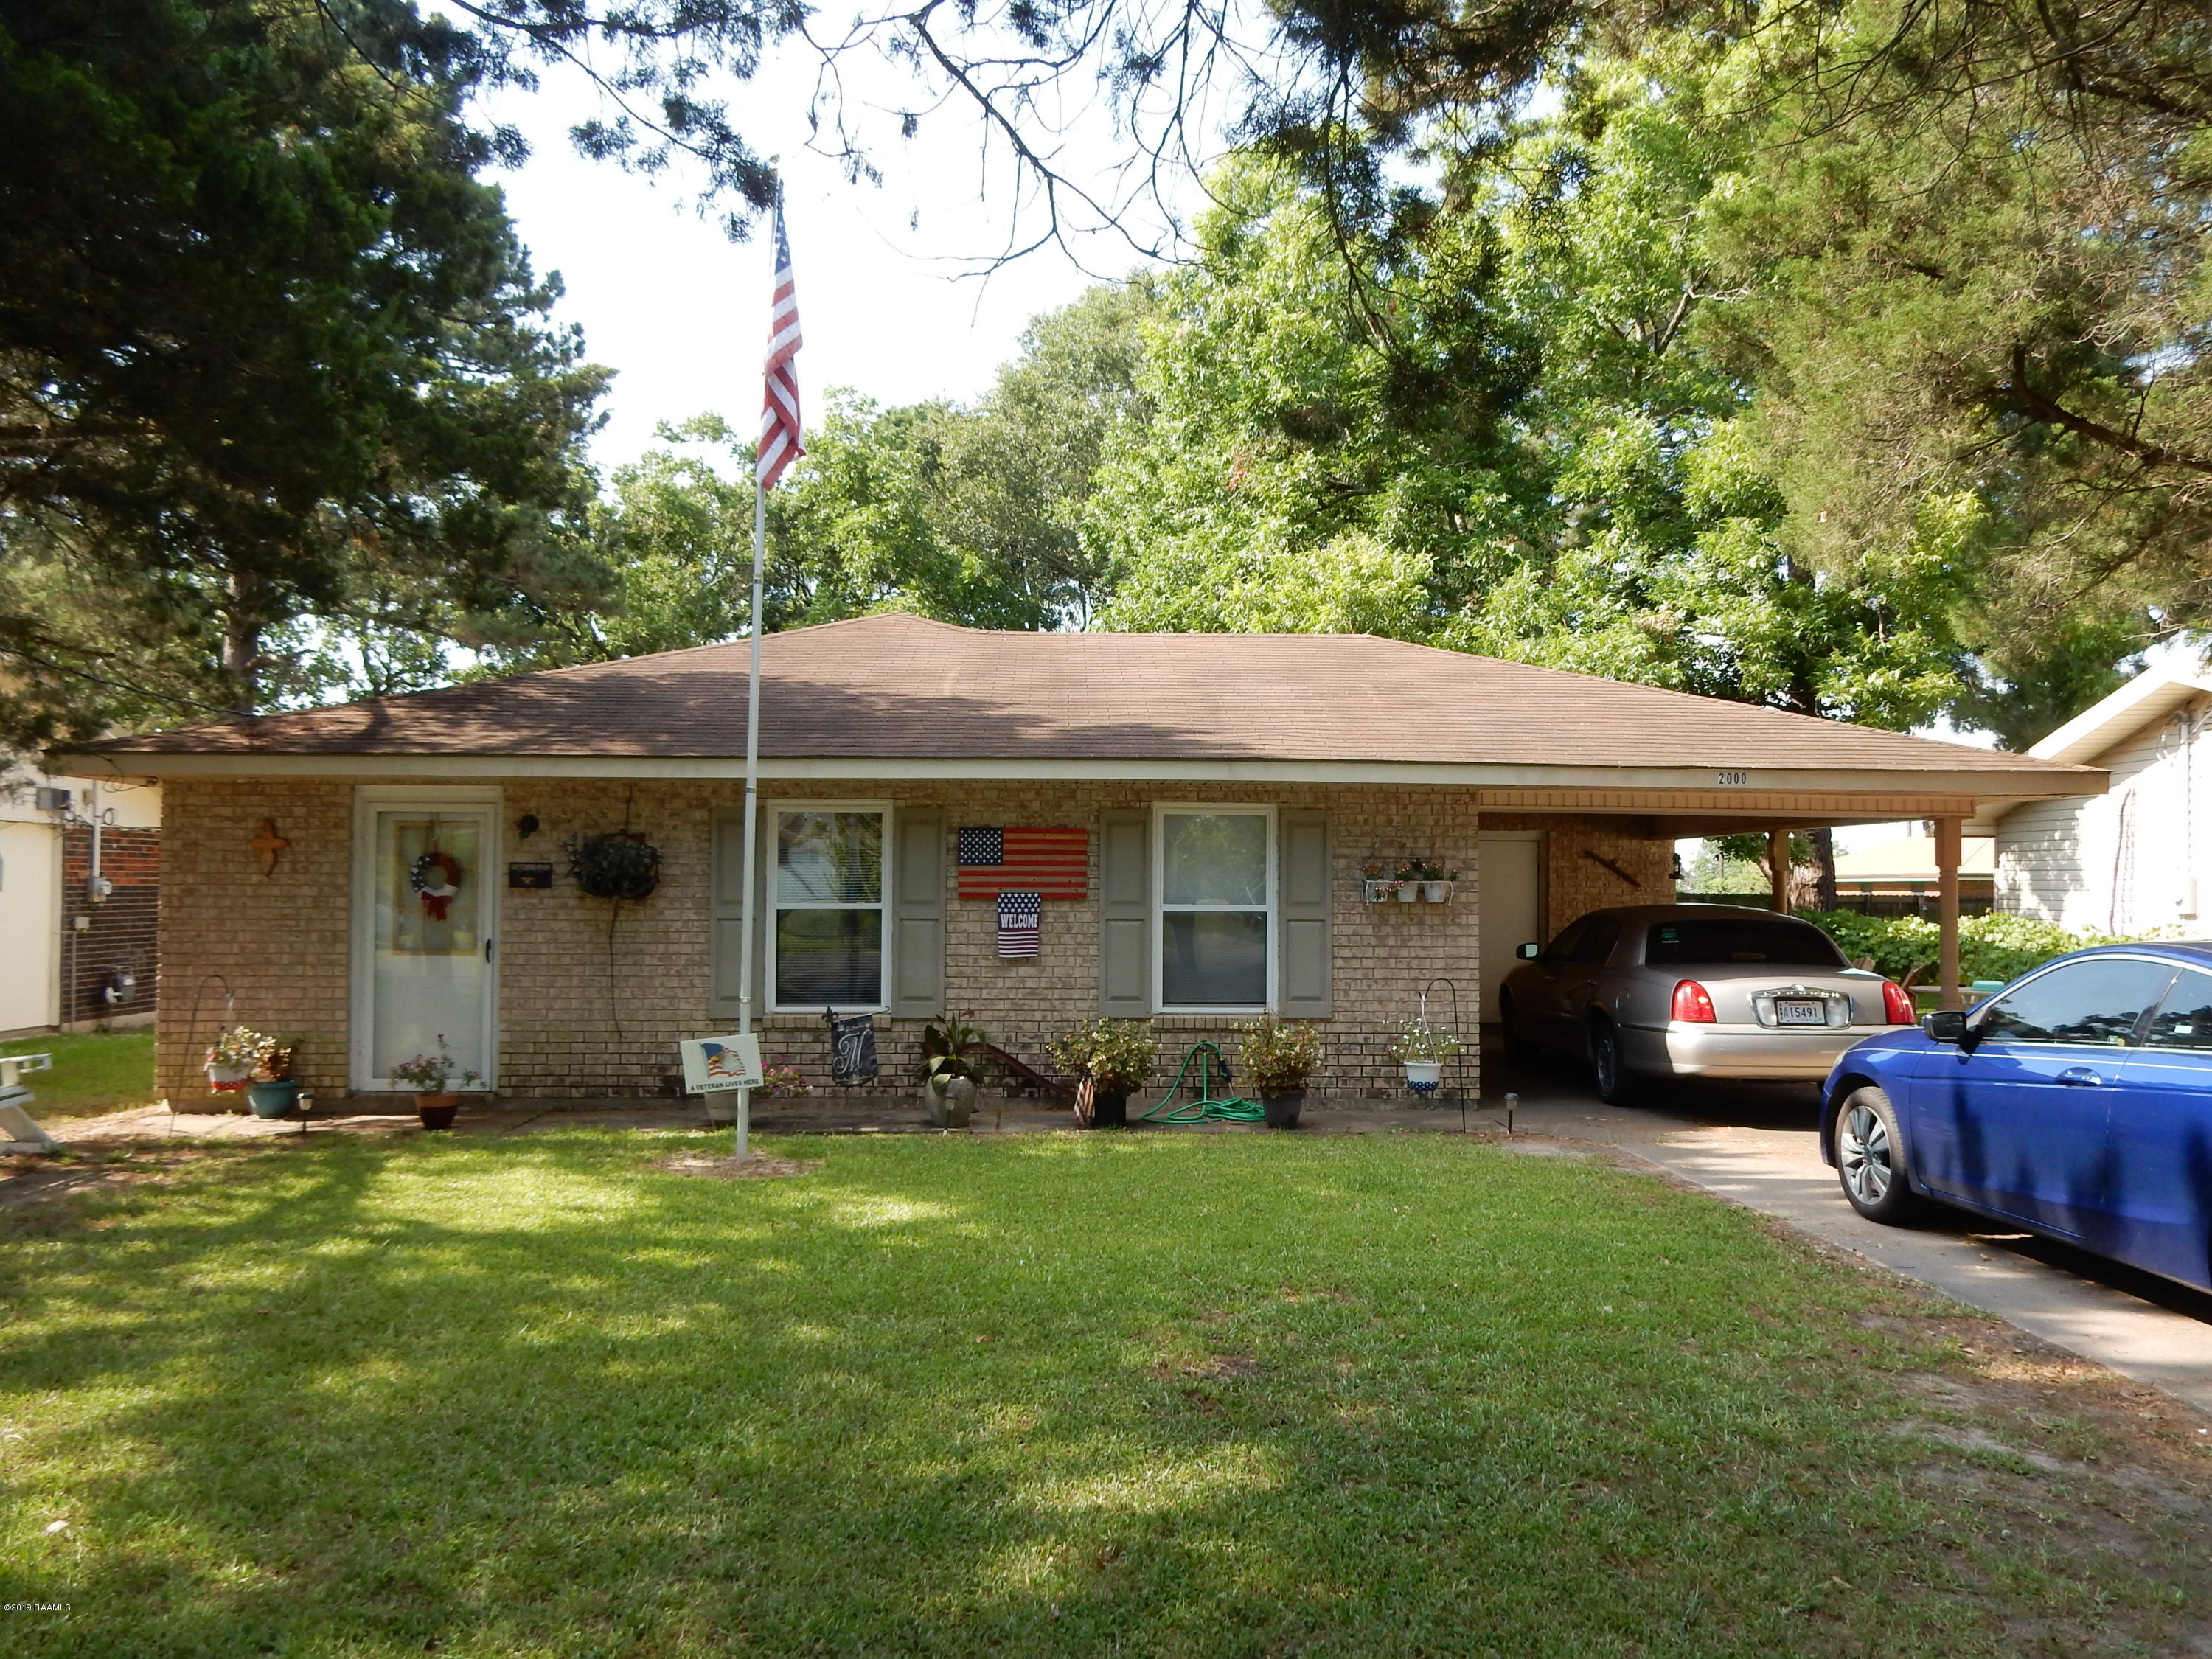 2000 Dudley Street W, Eunice, LA 70535 Photo #1